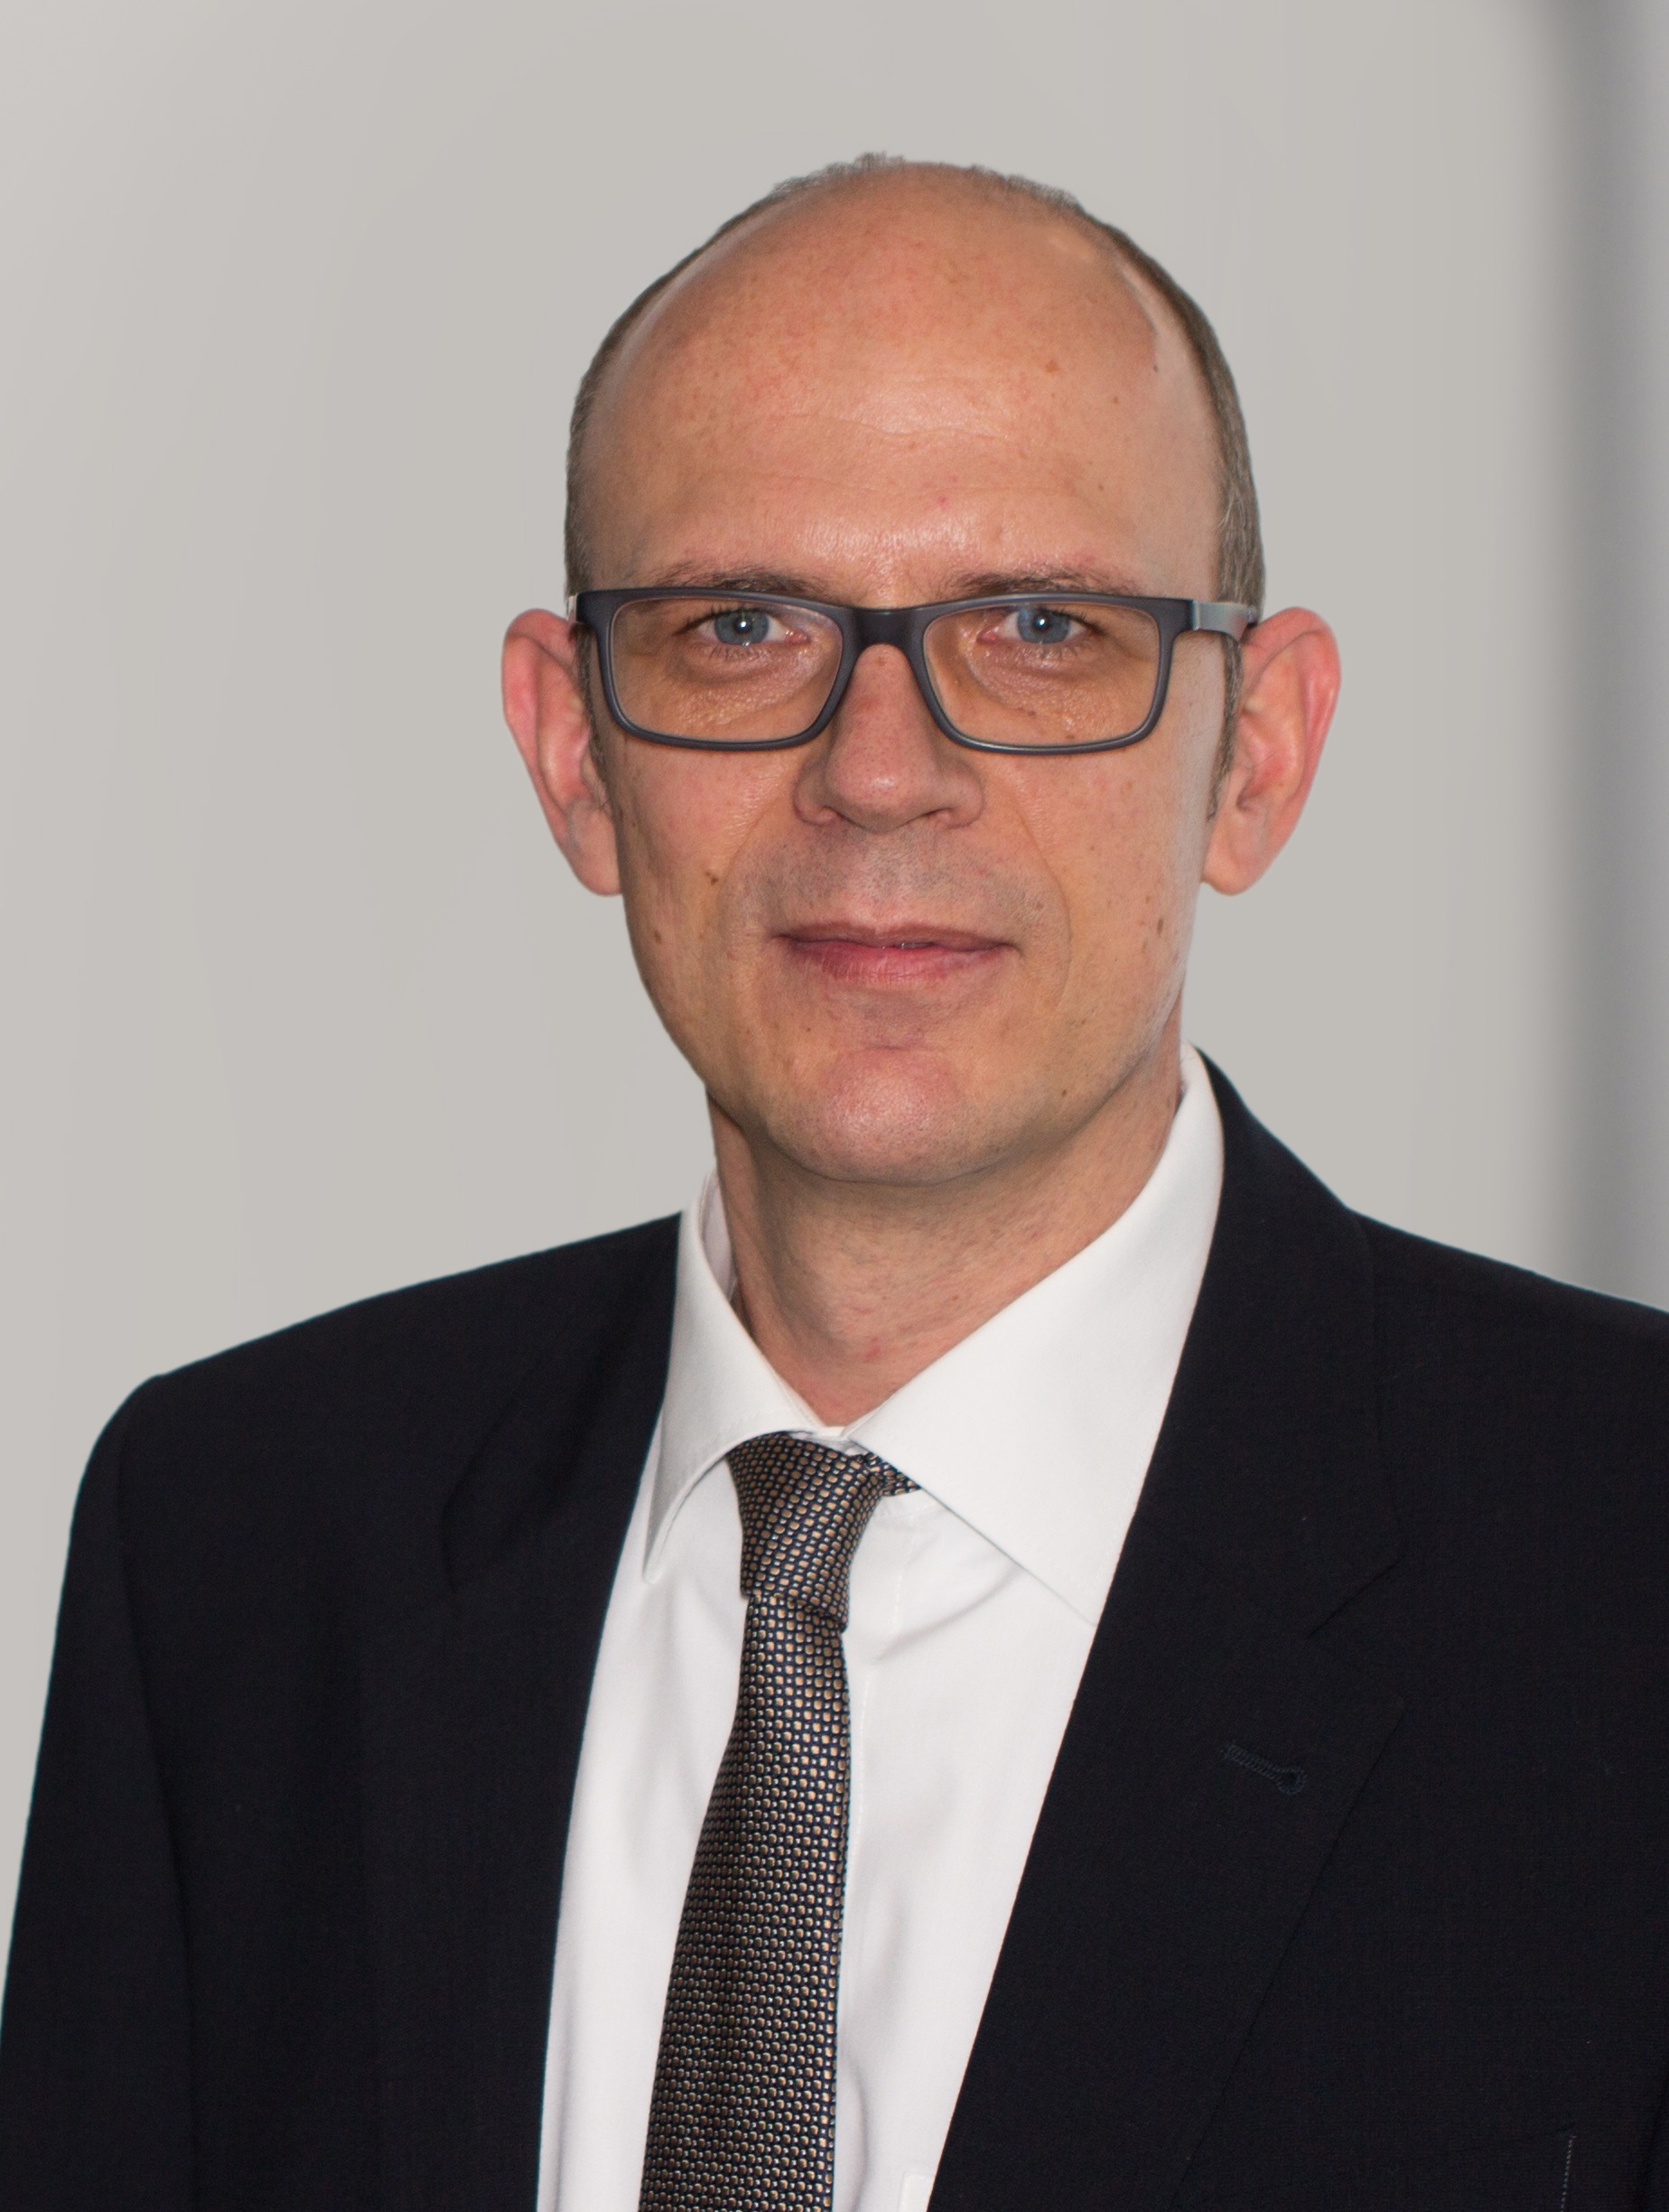 Thorsten Jungbluth